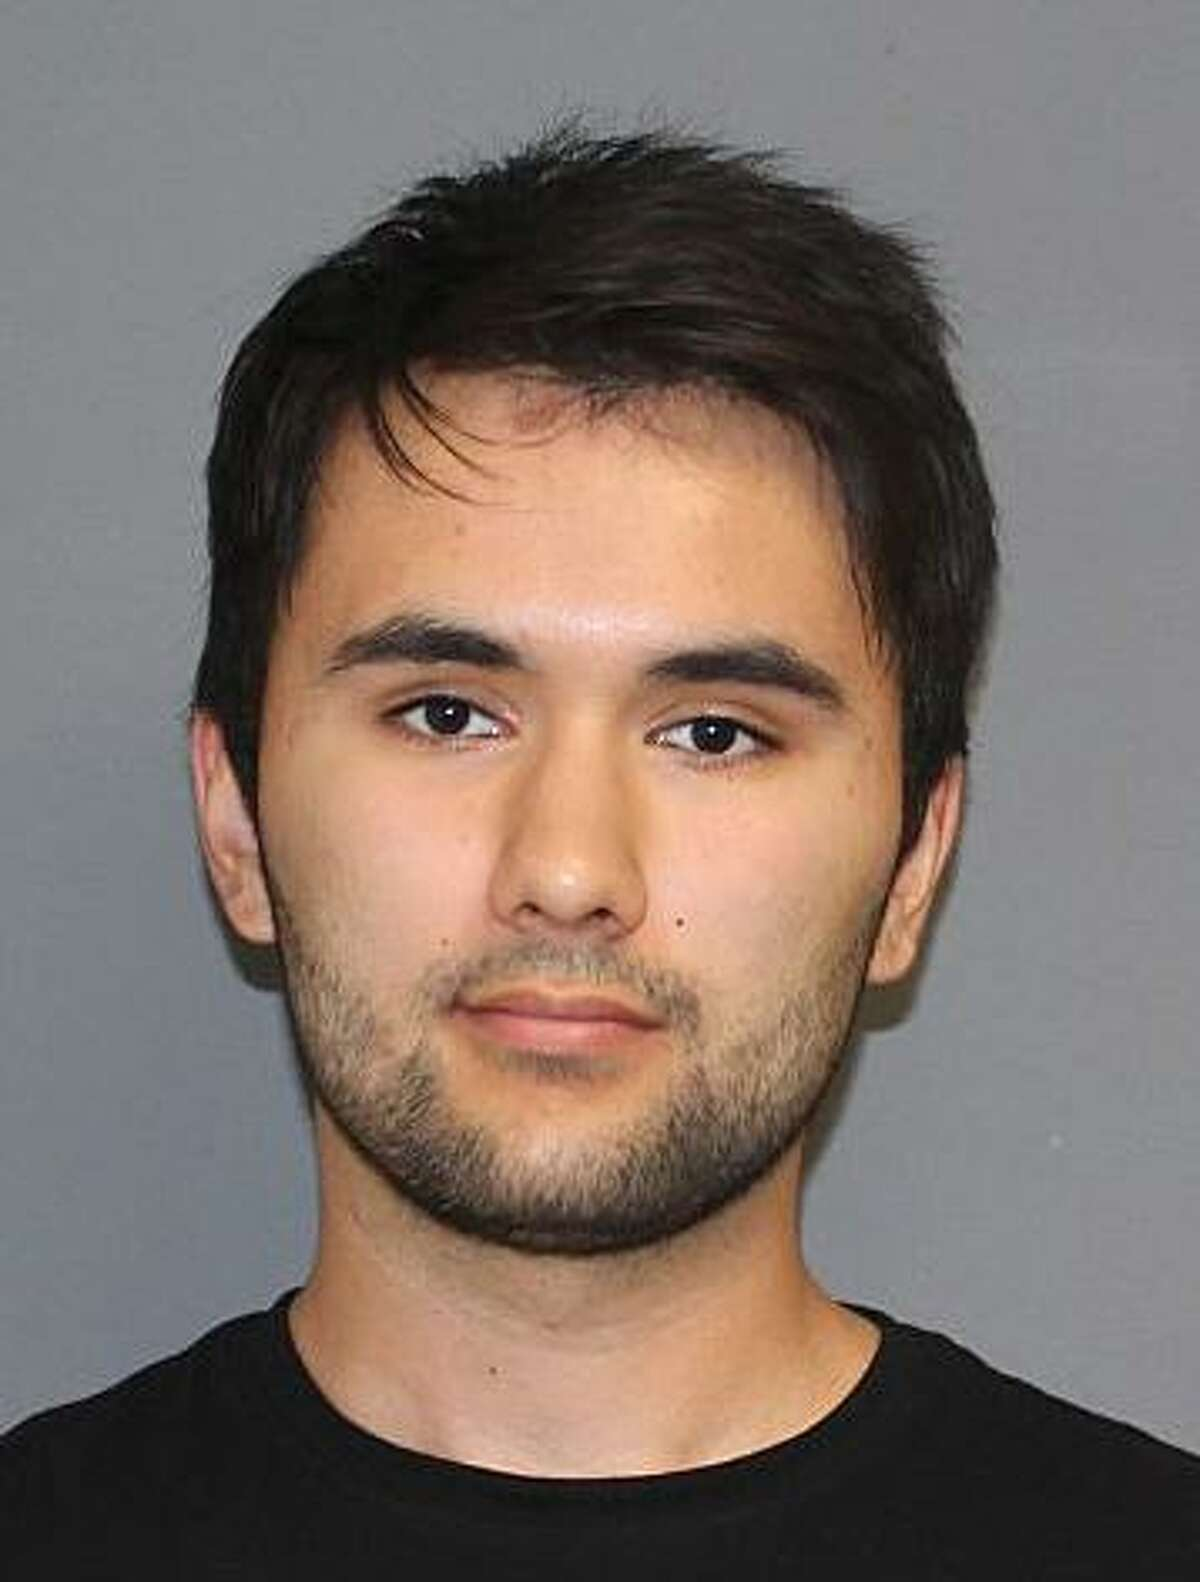 Abdulaziz Yuldoshev, 19, of Hamden, Conn., was charged with two counts of first-degree manslaughter, two counts of negligent homicide with a motor vehicle, four counts of first-degree assault and illegal racing on a highway. He posted a $50,000 court-set bond and is scheduled to appear in Derby Superior Court at 9 a.m. on June 28, 2018.